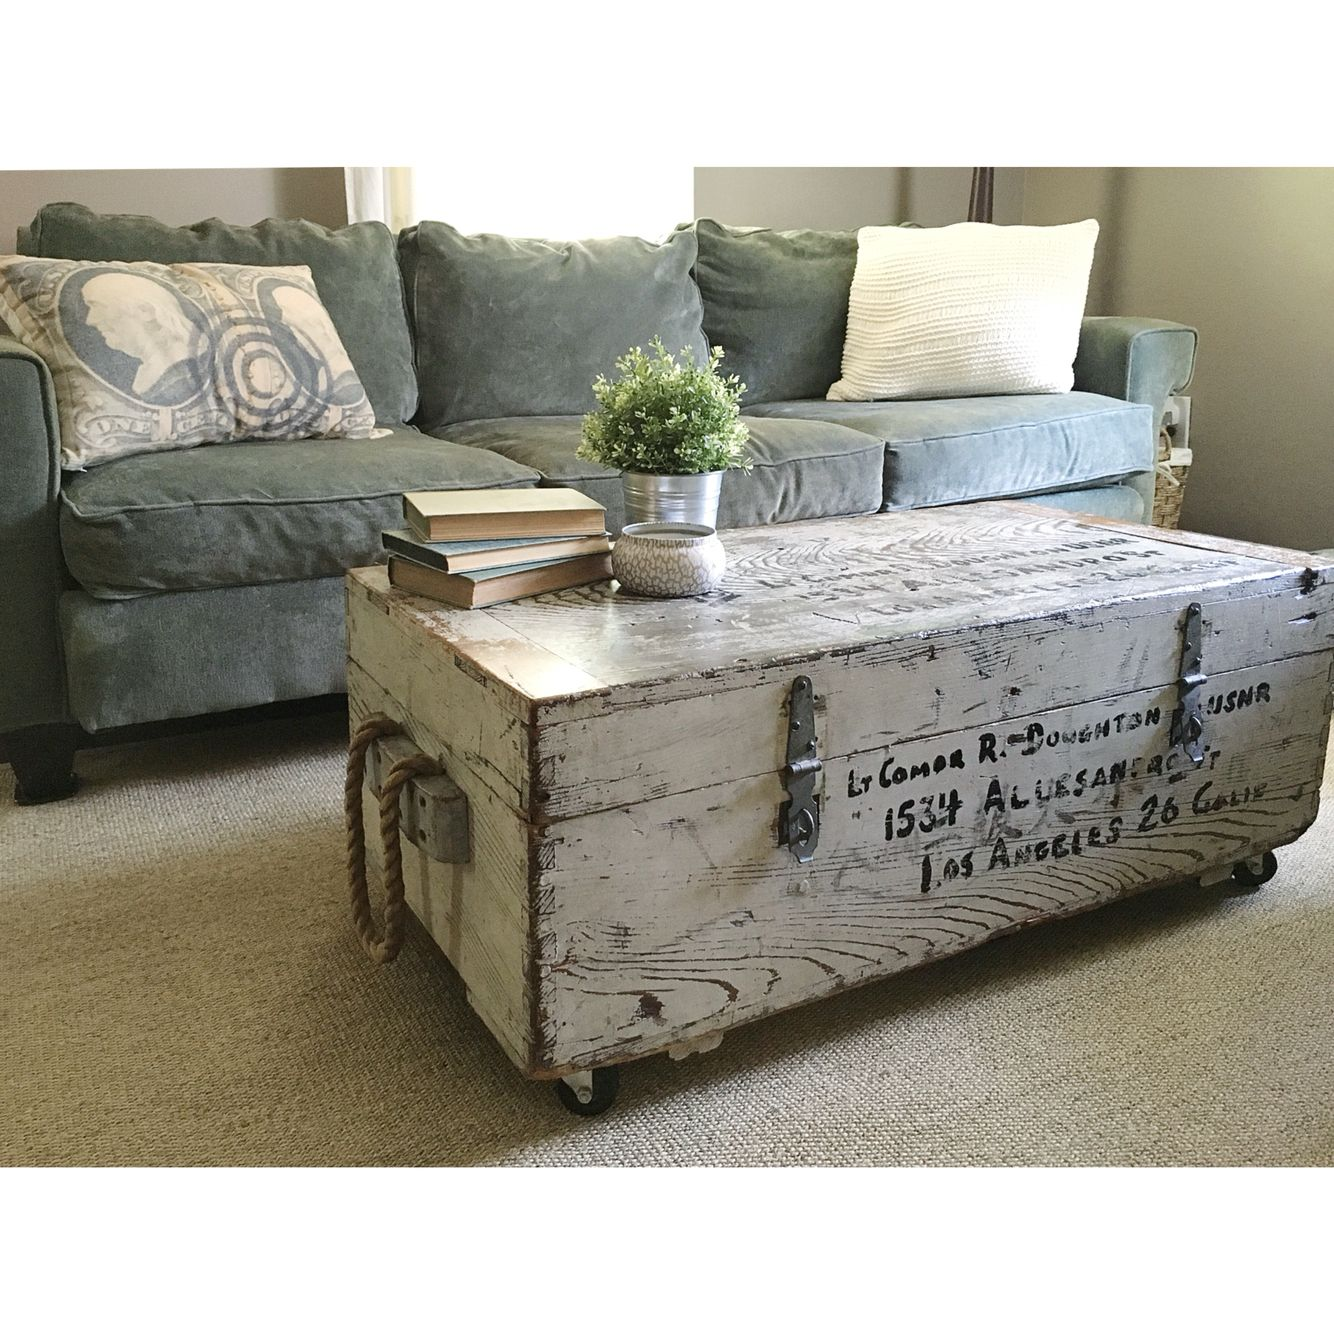 Vintage wwii foot locker repurposed into coffee table and vintage wwii foot locker repurposed into coffee table and blanket storage ethelusvintagesy geotapseo Image collections